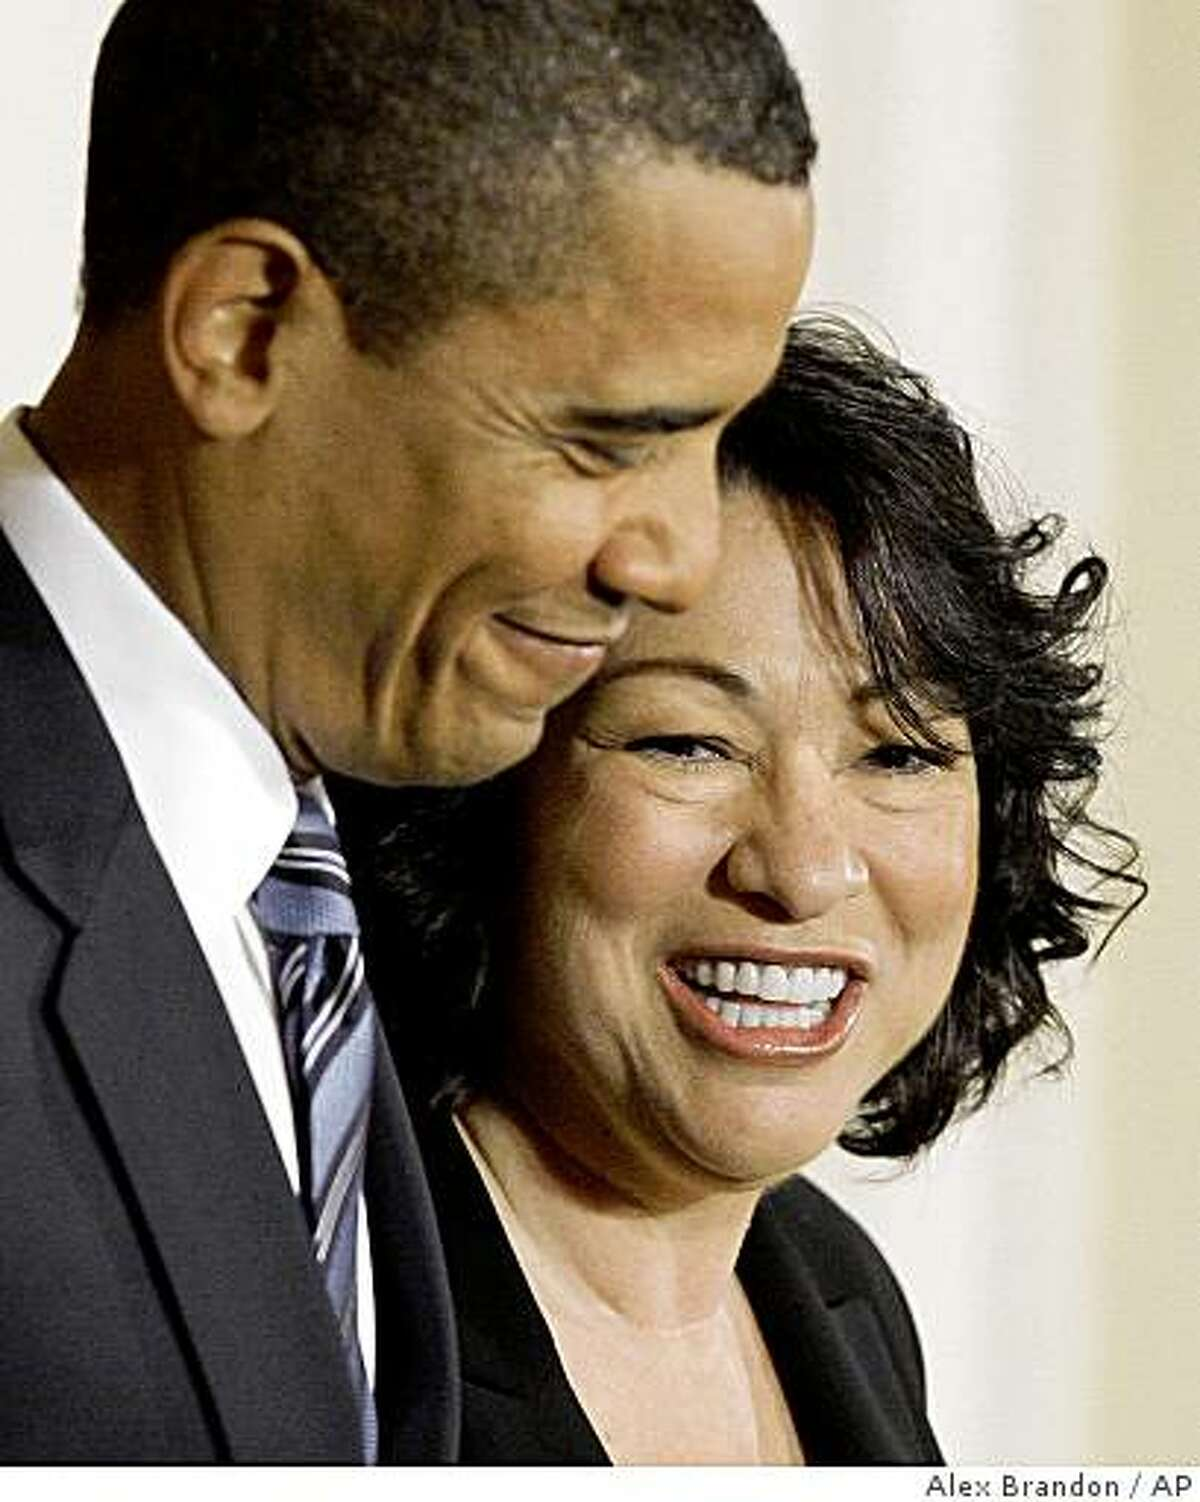 President Barack Obama announces federal appeals court judge Sonia Sotomayor, right, as his nominee for the Supreme Court, Tuesday May 26, 2009, in the East Room of the White House in Washington. (AP Photo/Alex Brandon)